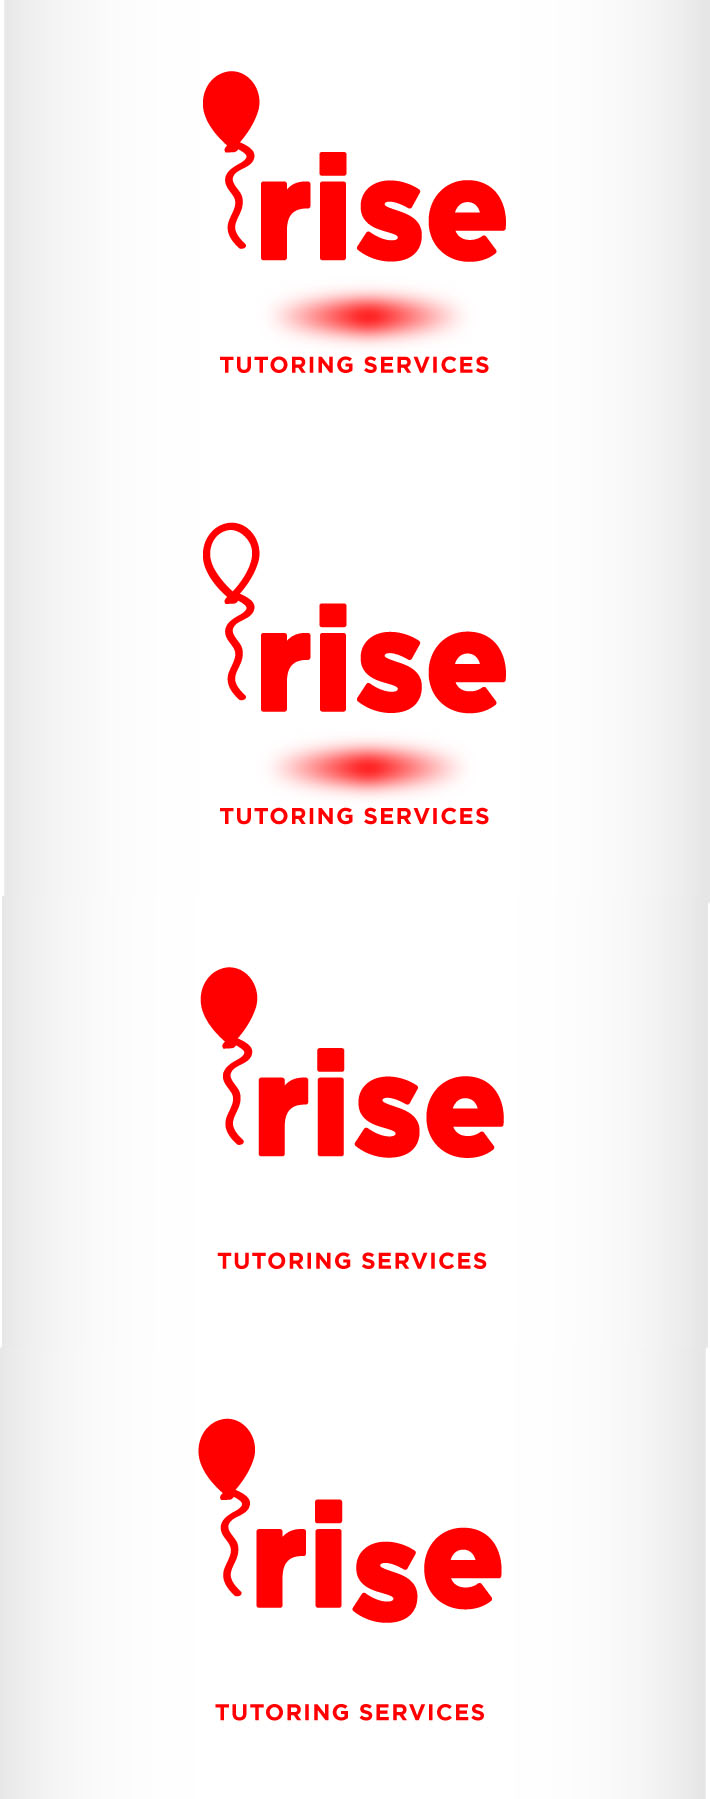 Logo Design by Andrés González - Entry No. 143 in the Logo Design Contest Imaginative Logo Design for Rise Tutoring Service.